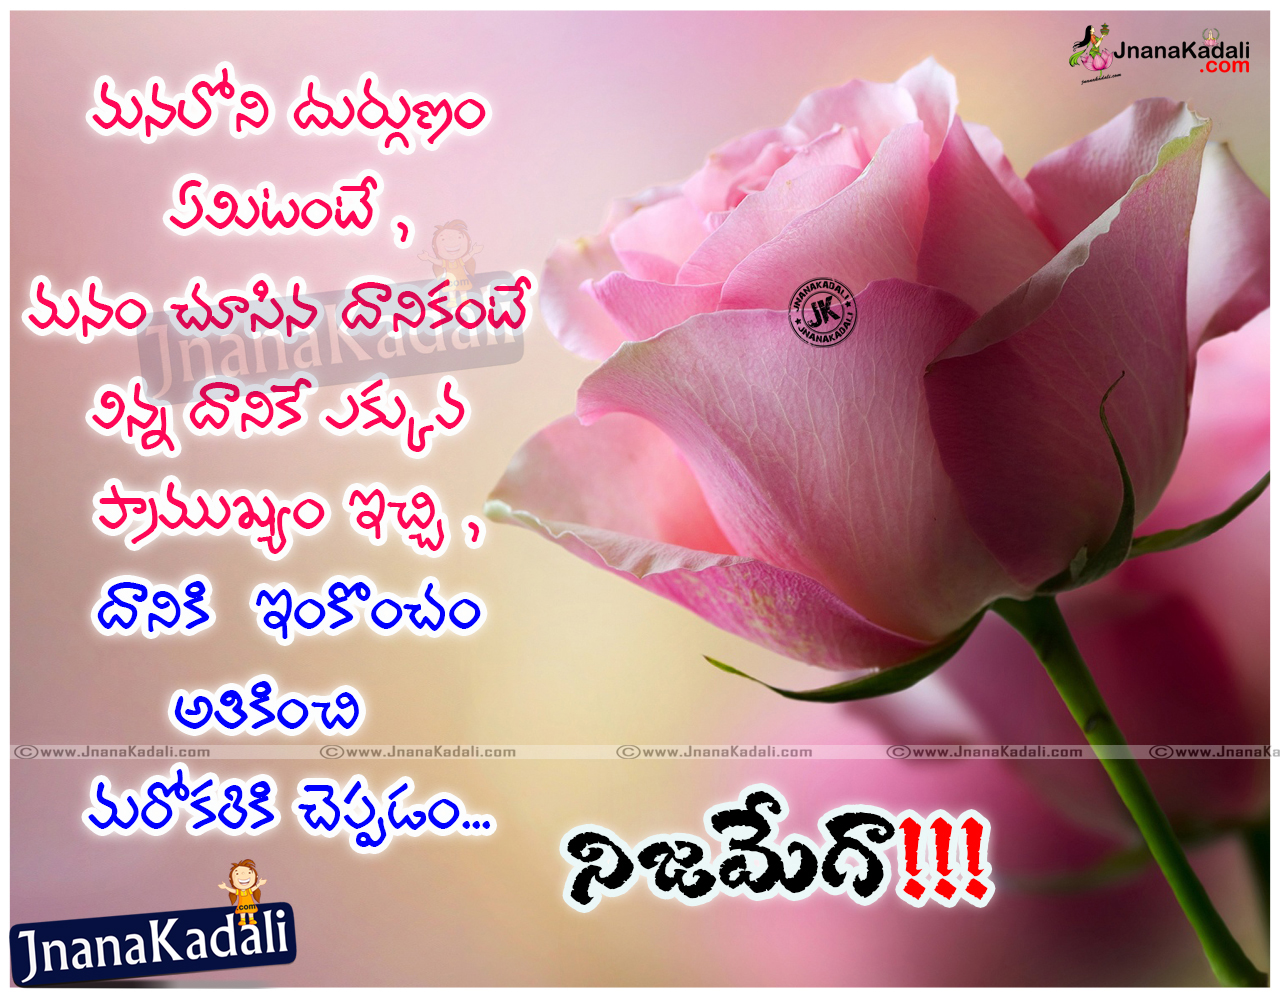 Real Good Quotes About Life Best Telugu Inspirational Quotes Hd Wallpapers  Jnana Kadali